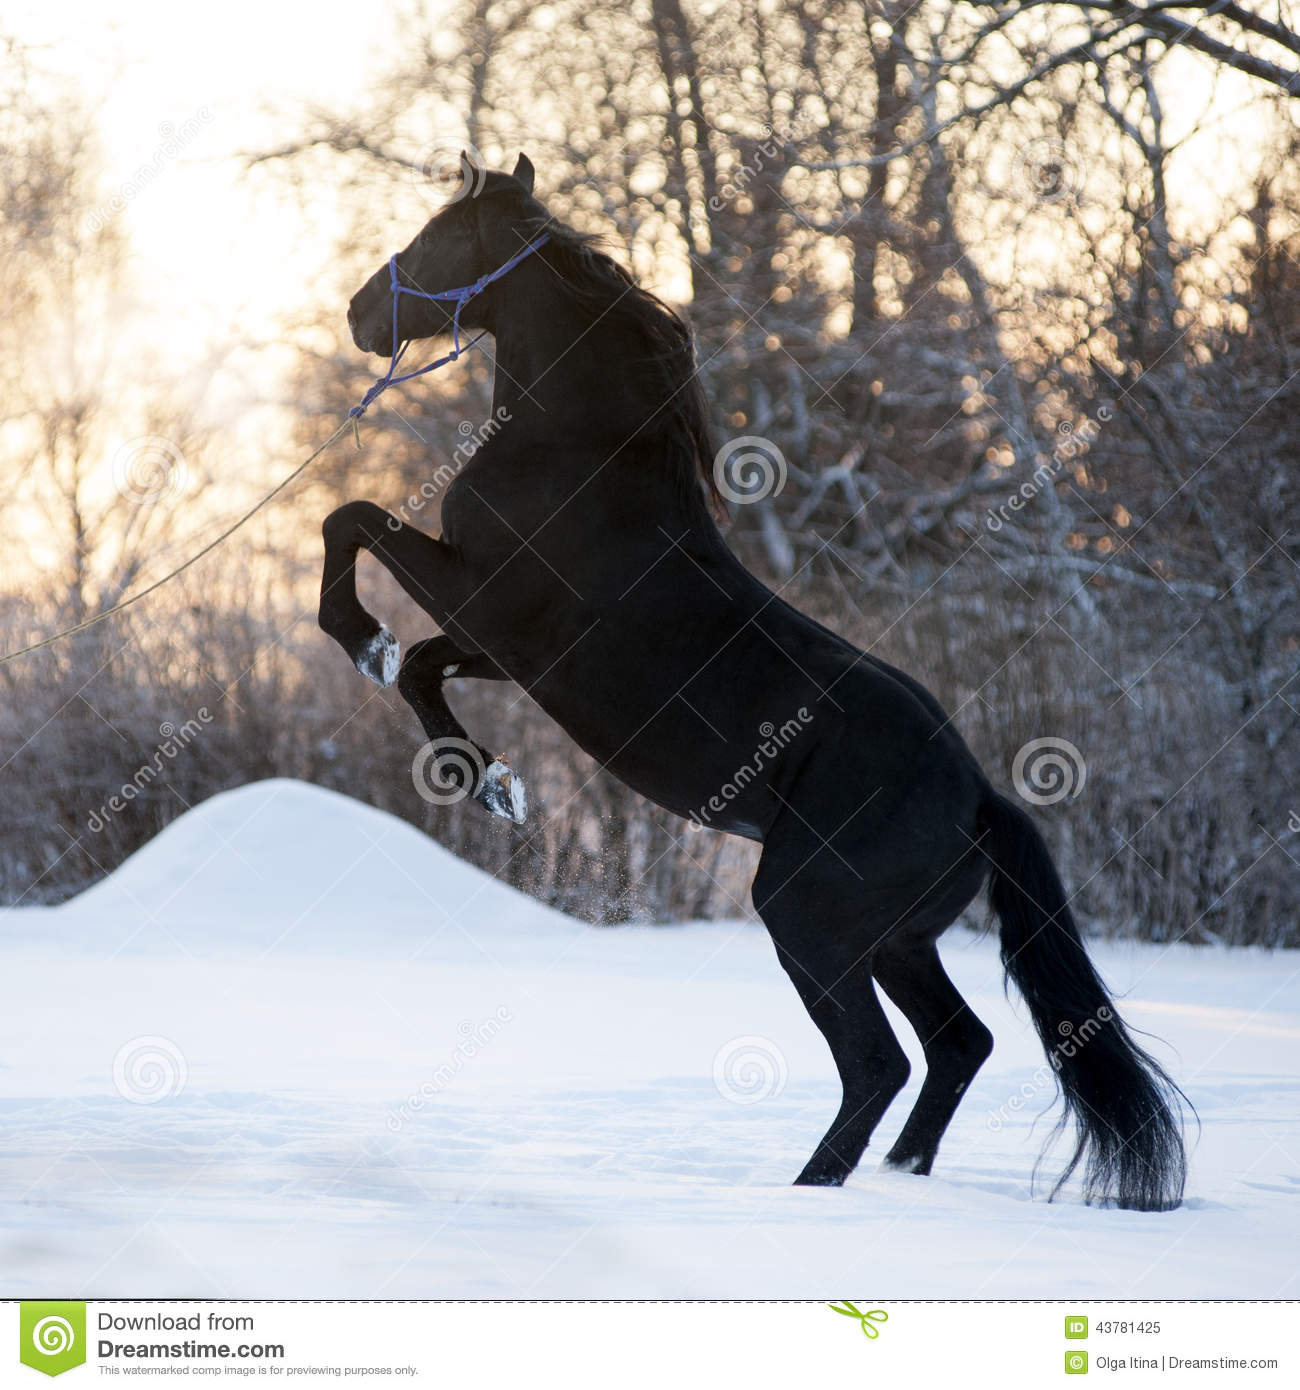 5 410 Black Horse Winter Photos Free Royalty Free Stock Photos From Dreamstime